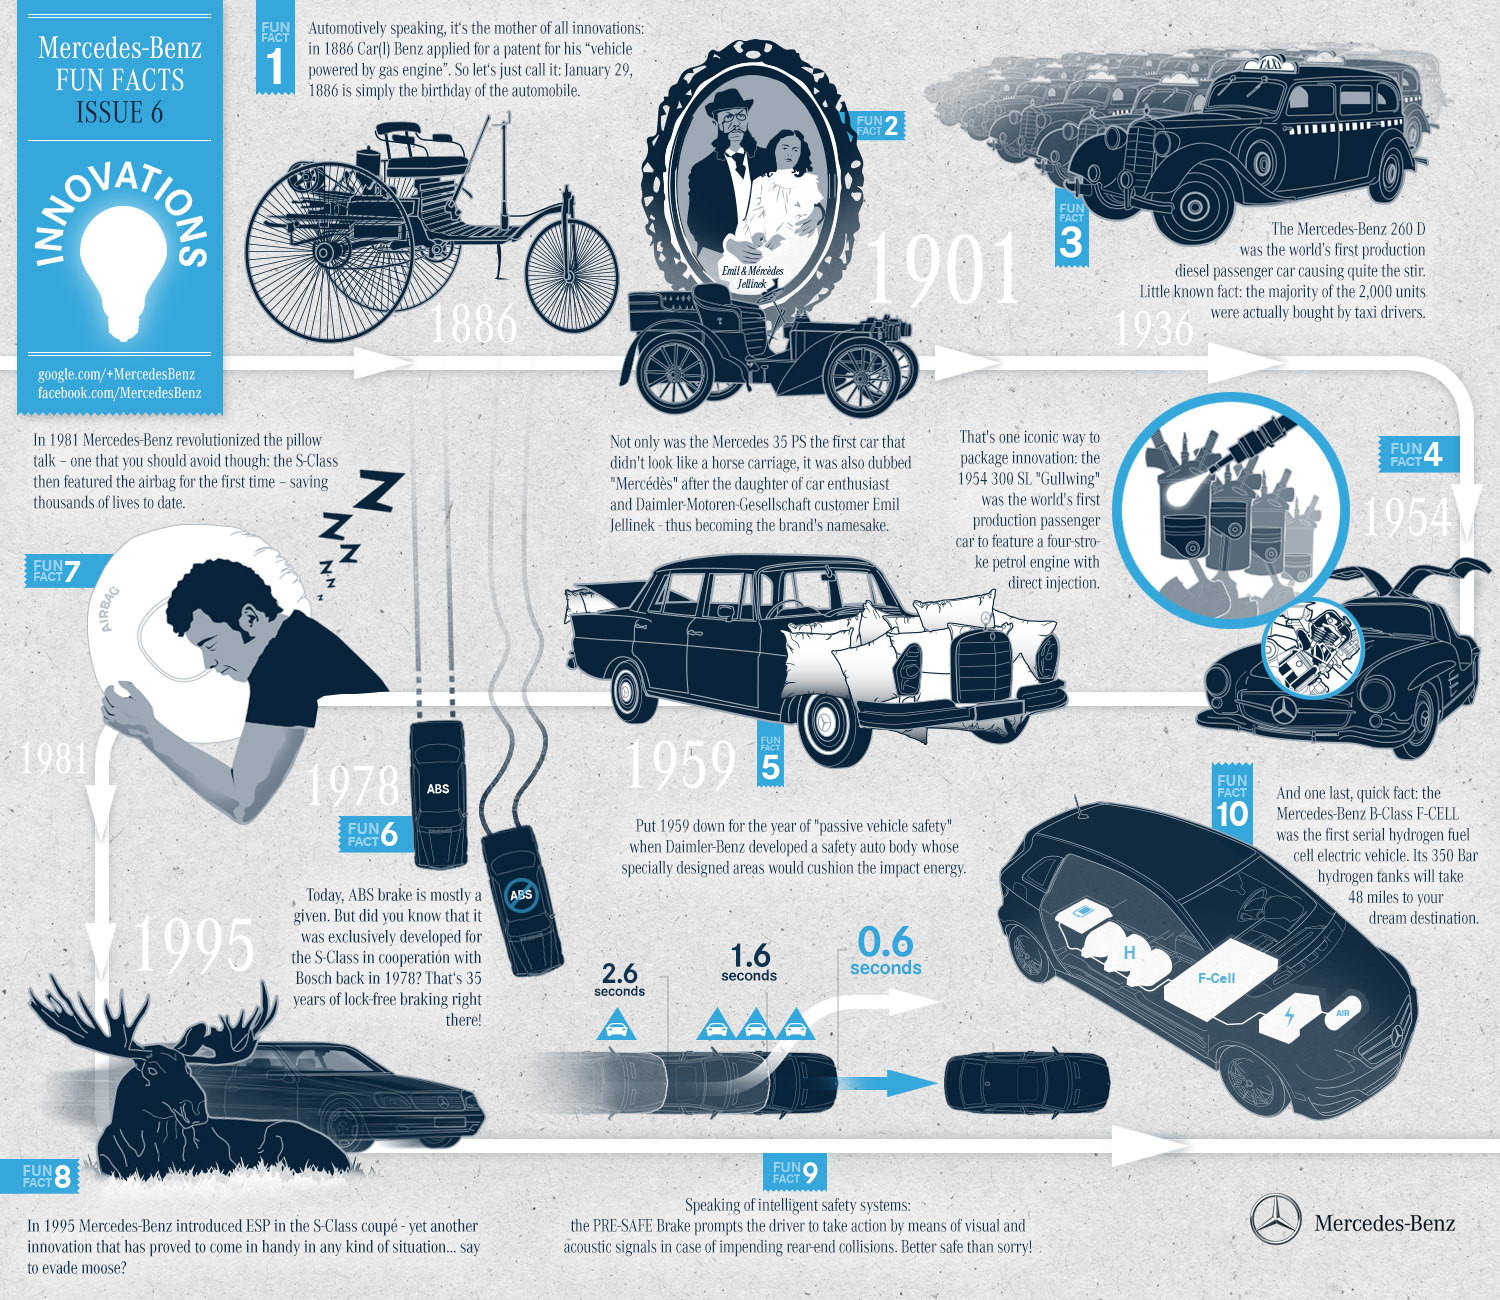 Mercedes-Benz Fun Facts - Innovation! Infographic